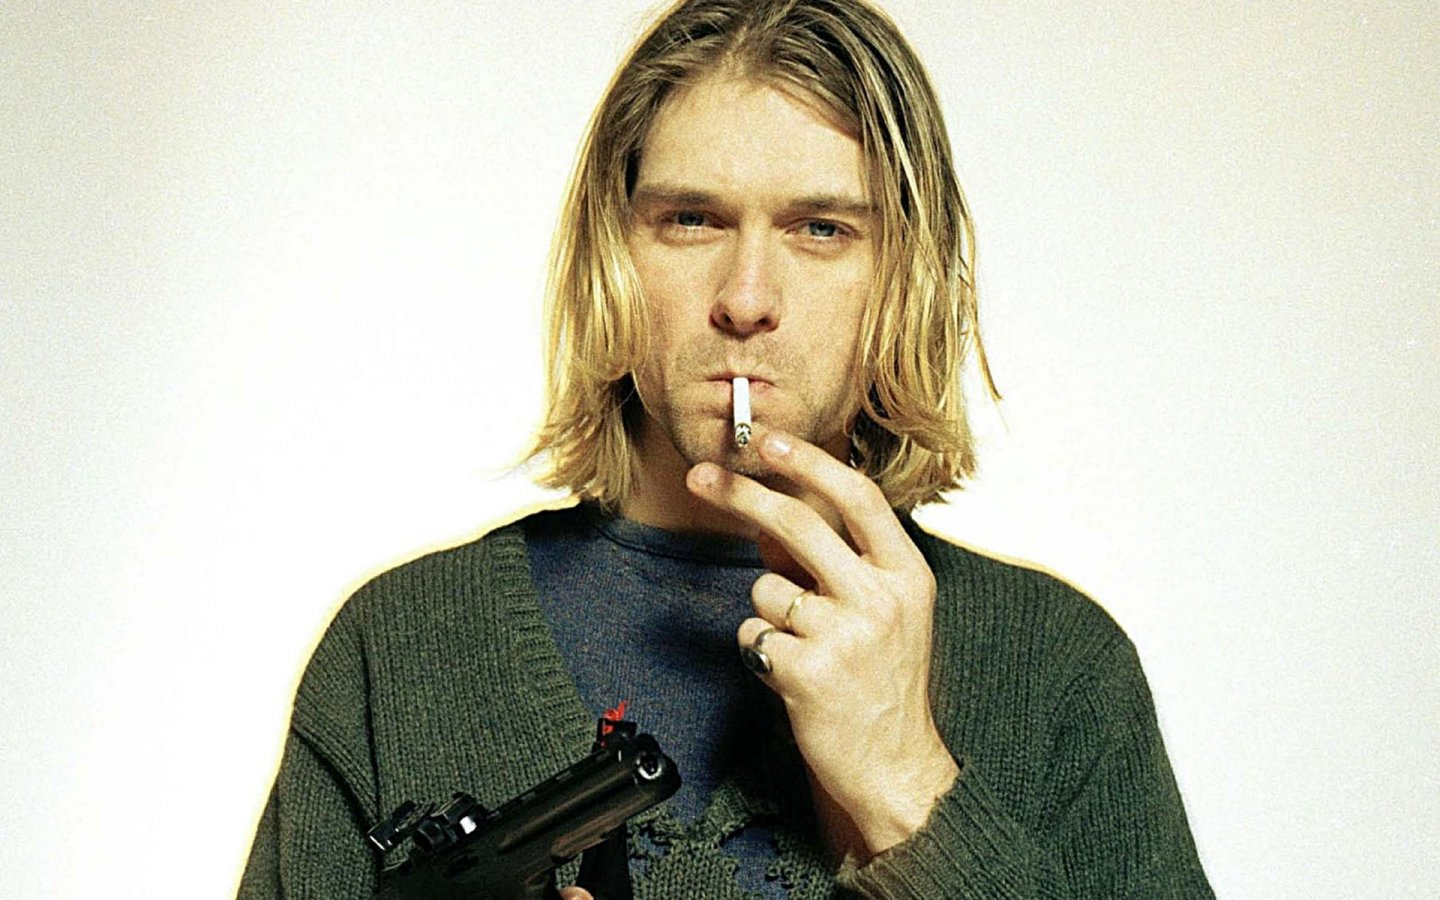 Kurt Cobain Wallpaper 1440x900 Wallpapers 1440x900 Wallpapers 1440x900